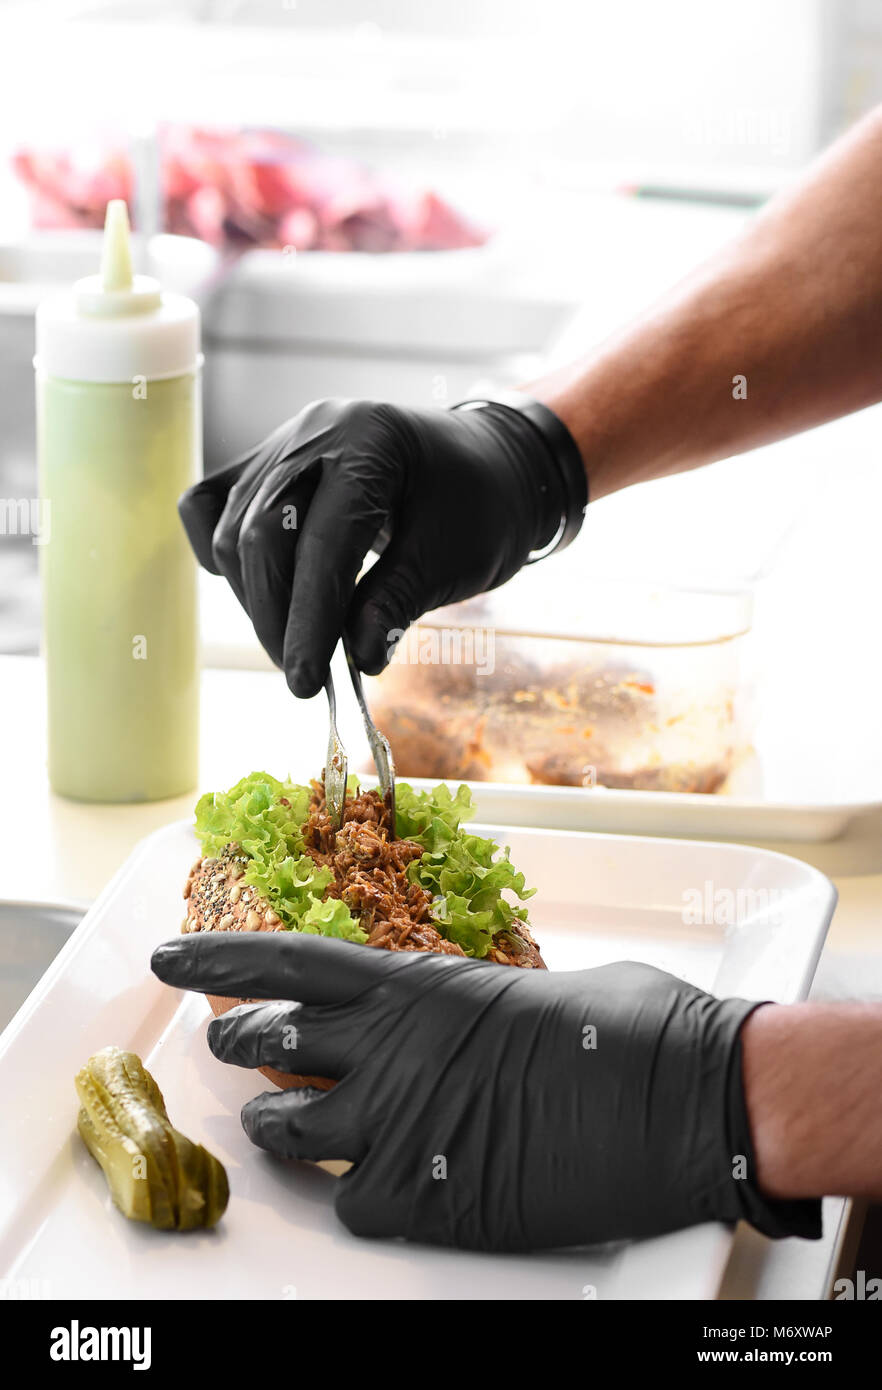 Chef preparing a pulled pork sandwich on a healthy wholegrain roll spooning the tender shredded meat onto fresh - Stock Image